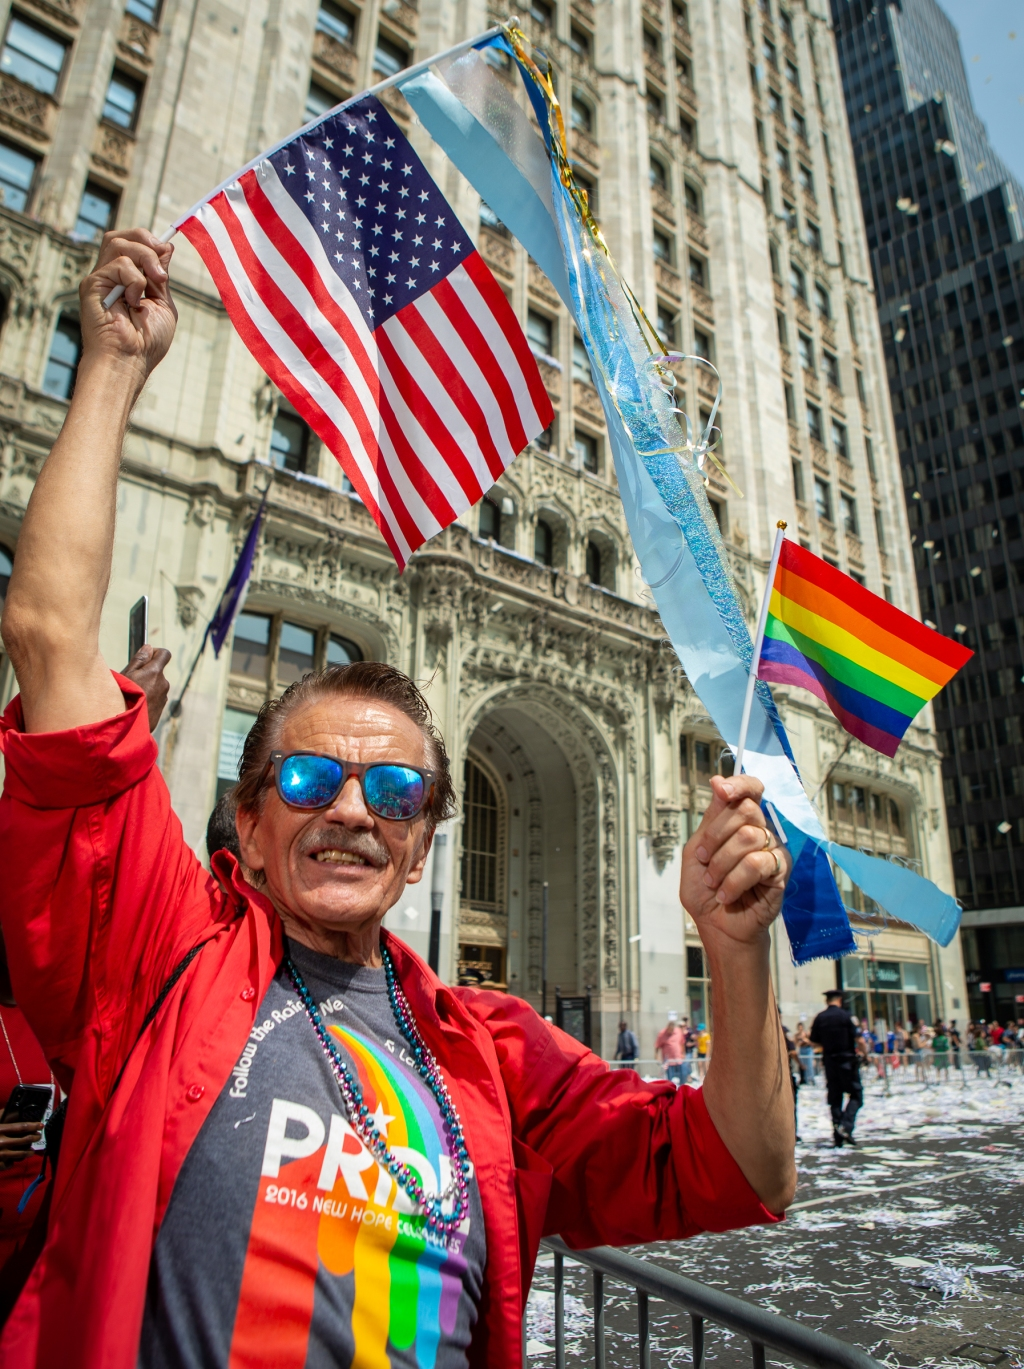 """""""This represents going forward in the world, for better equality,"""" says Ron Raz, 69, from San Francisco. """"It's hopeful, its a step forward."""""""